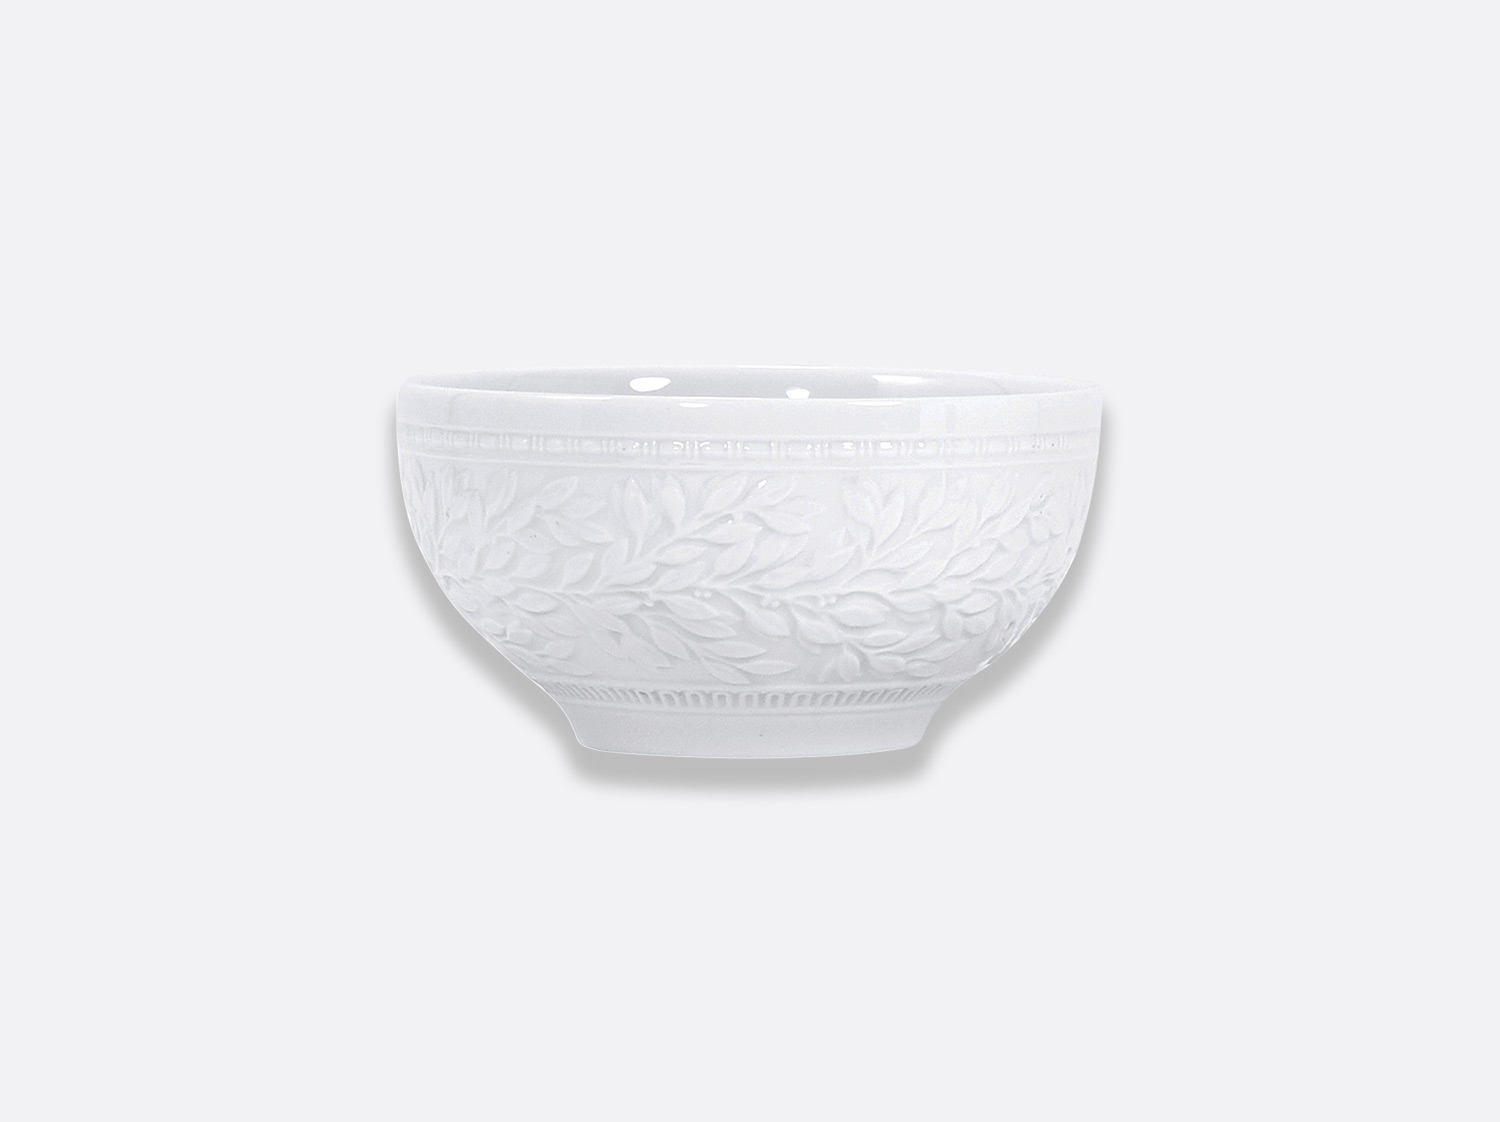 "China Rice bowl 5.5"" of the collection Louvre 